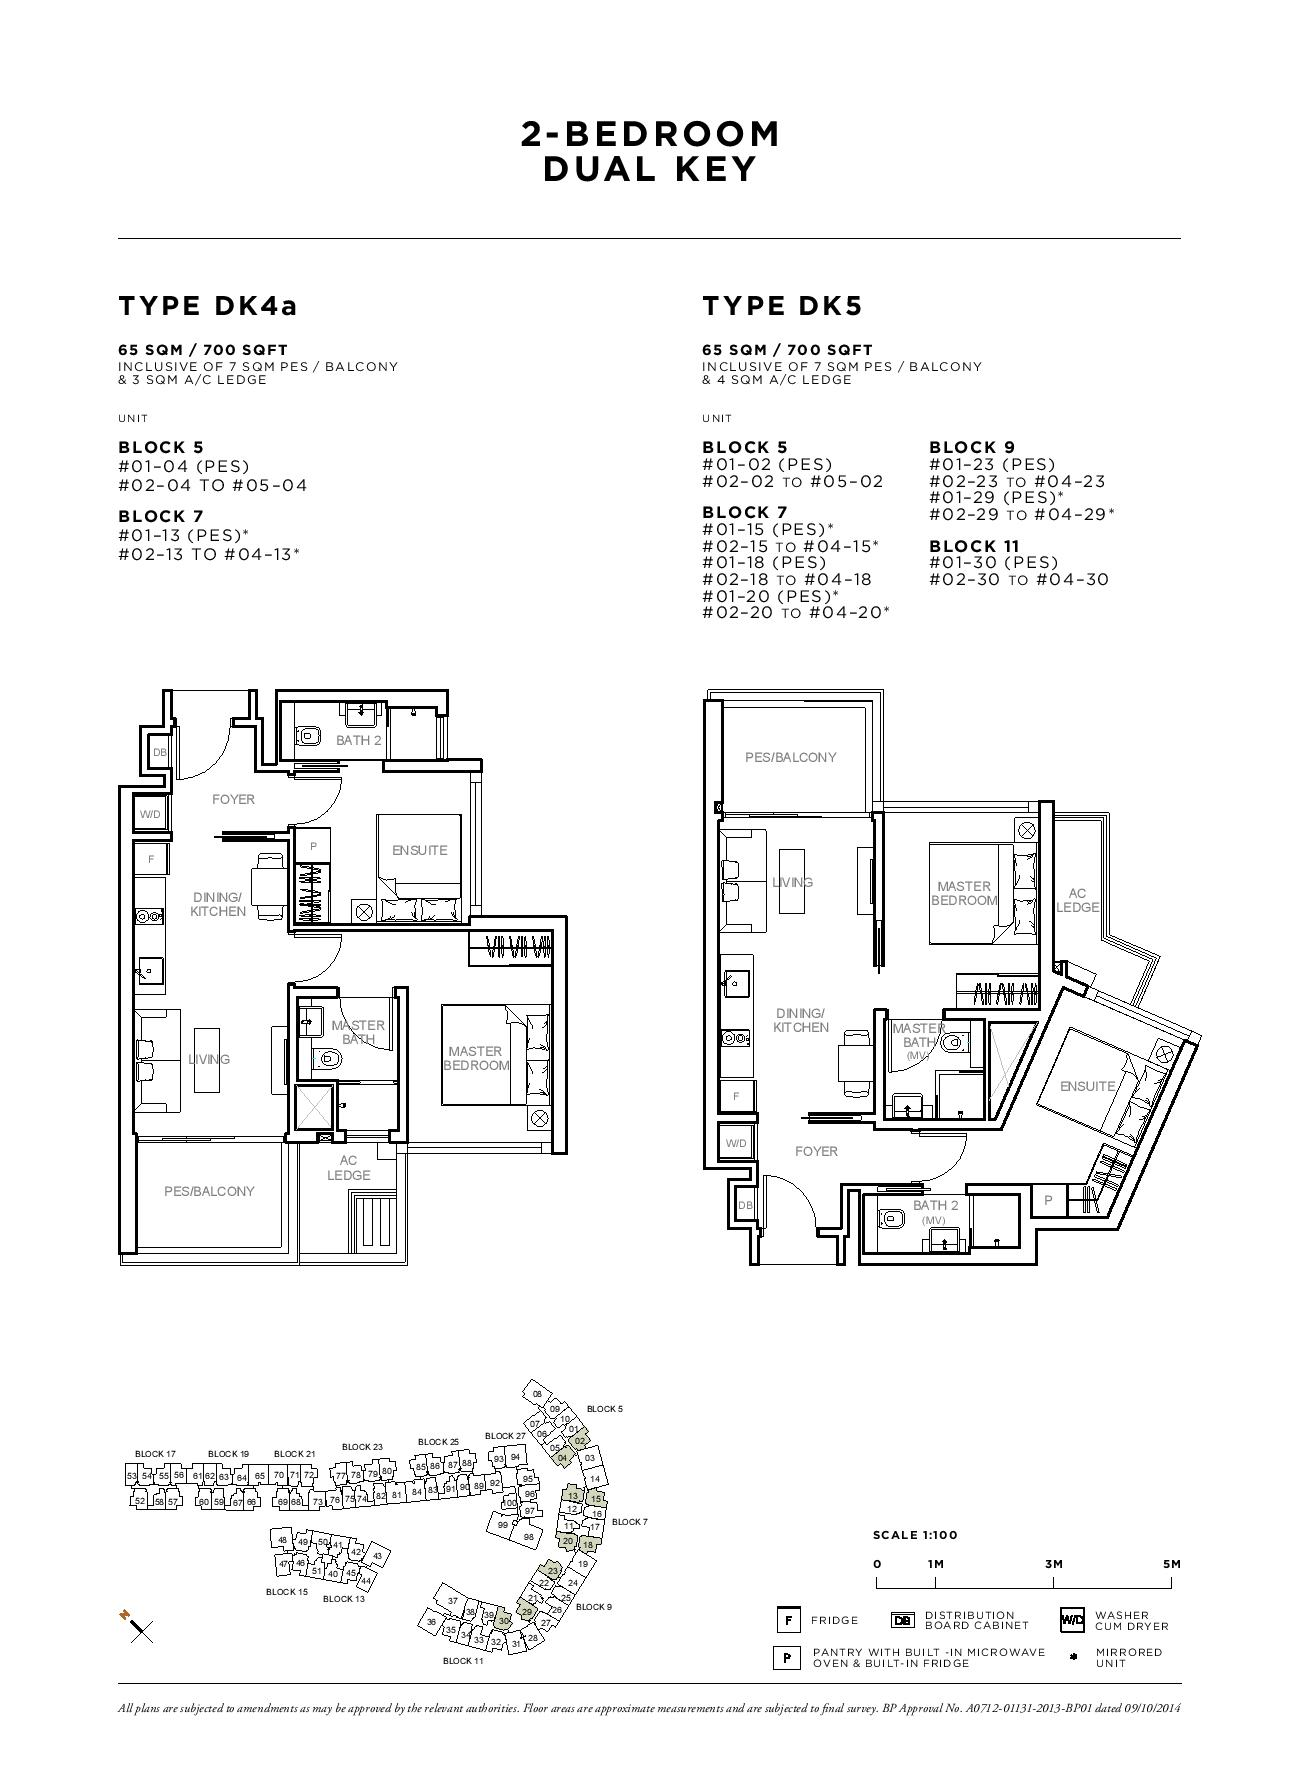 Sophia Hills 2 Bedroom Dual Key Type DK4a, DK5 Floor Plans